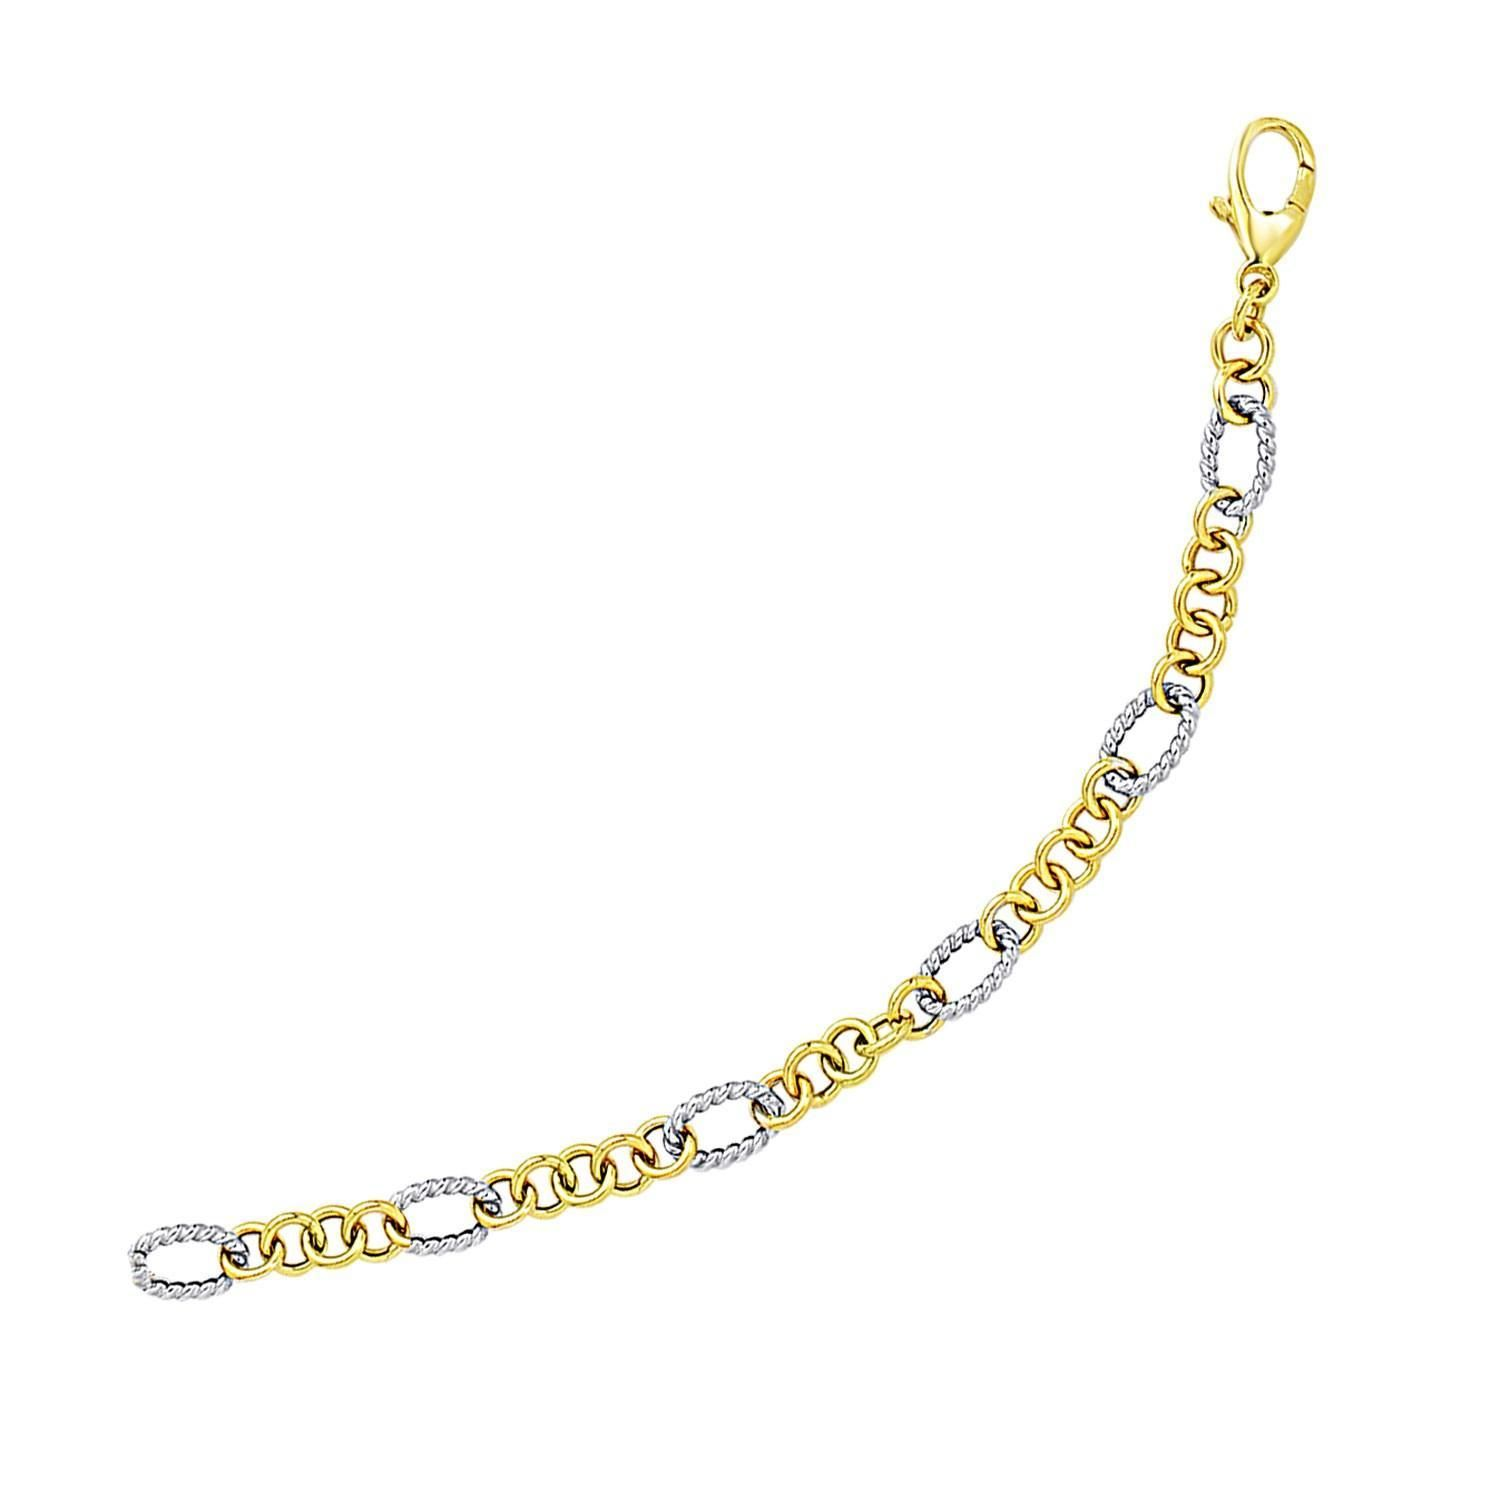 K twotone gold rope motif oval and round link chain bracelet